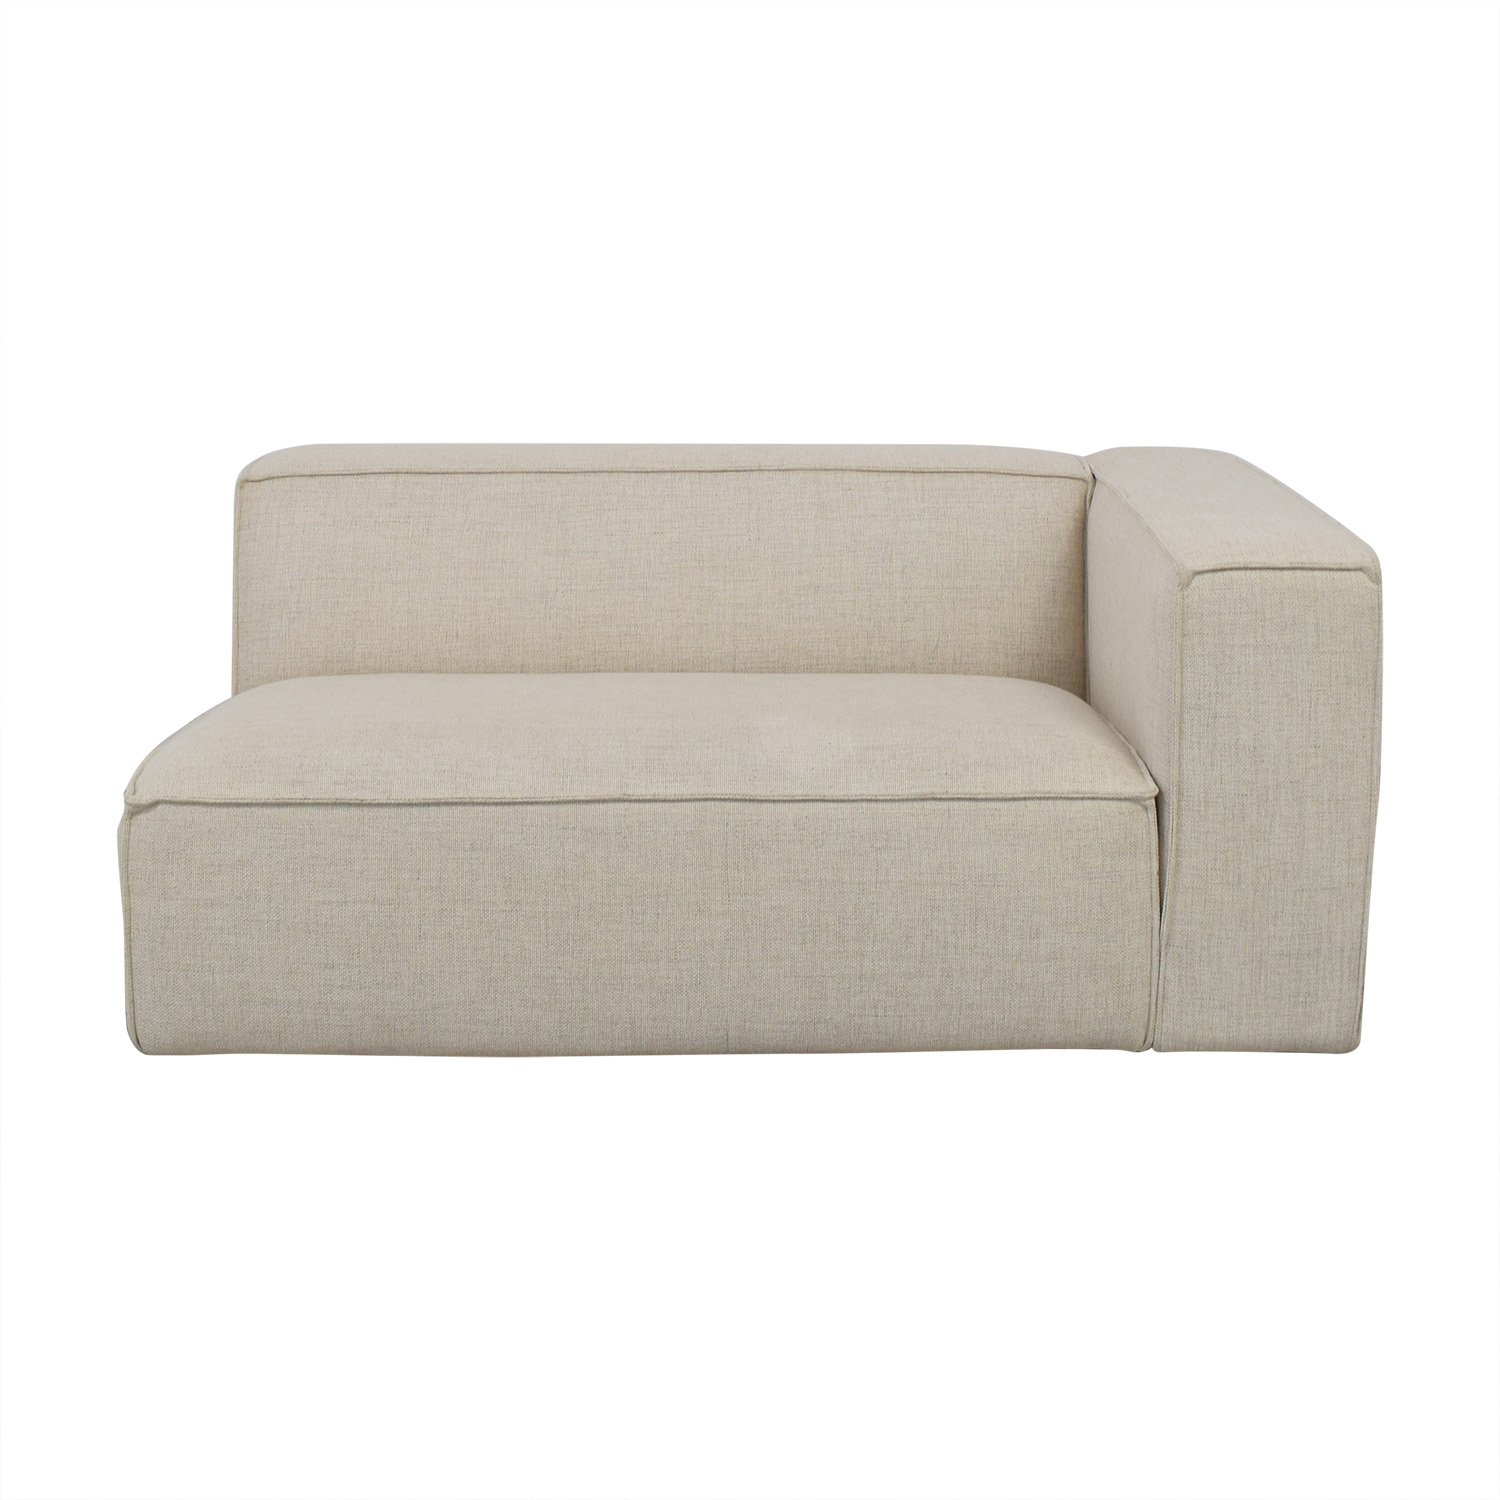 Interior Define White One-Arm High Sofa / Chaises